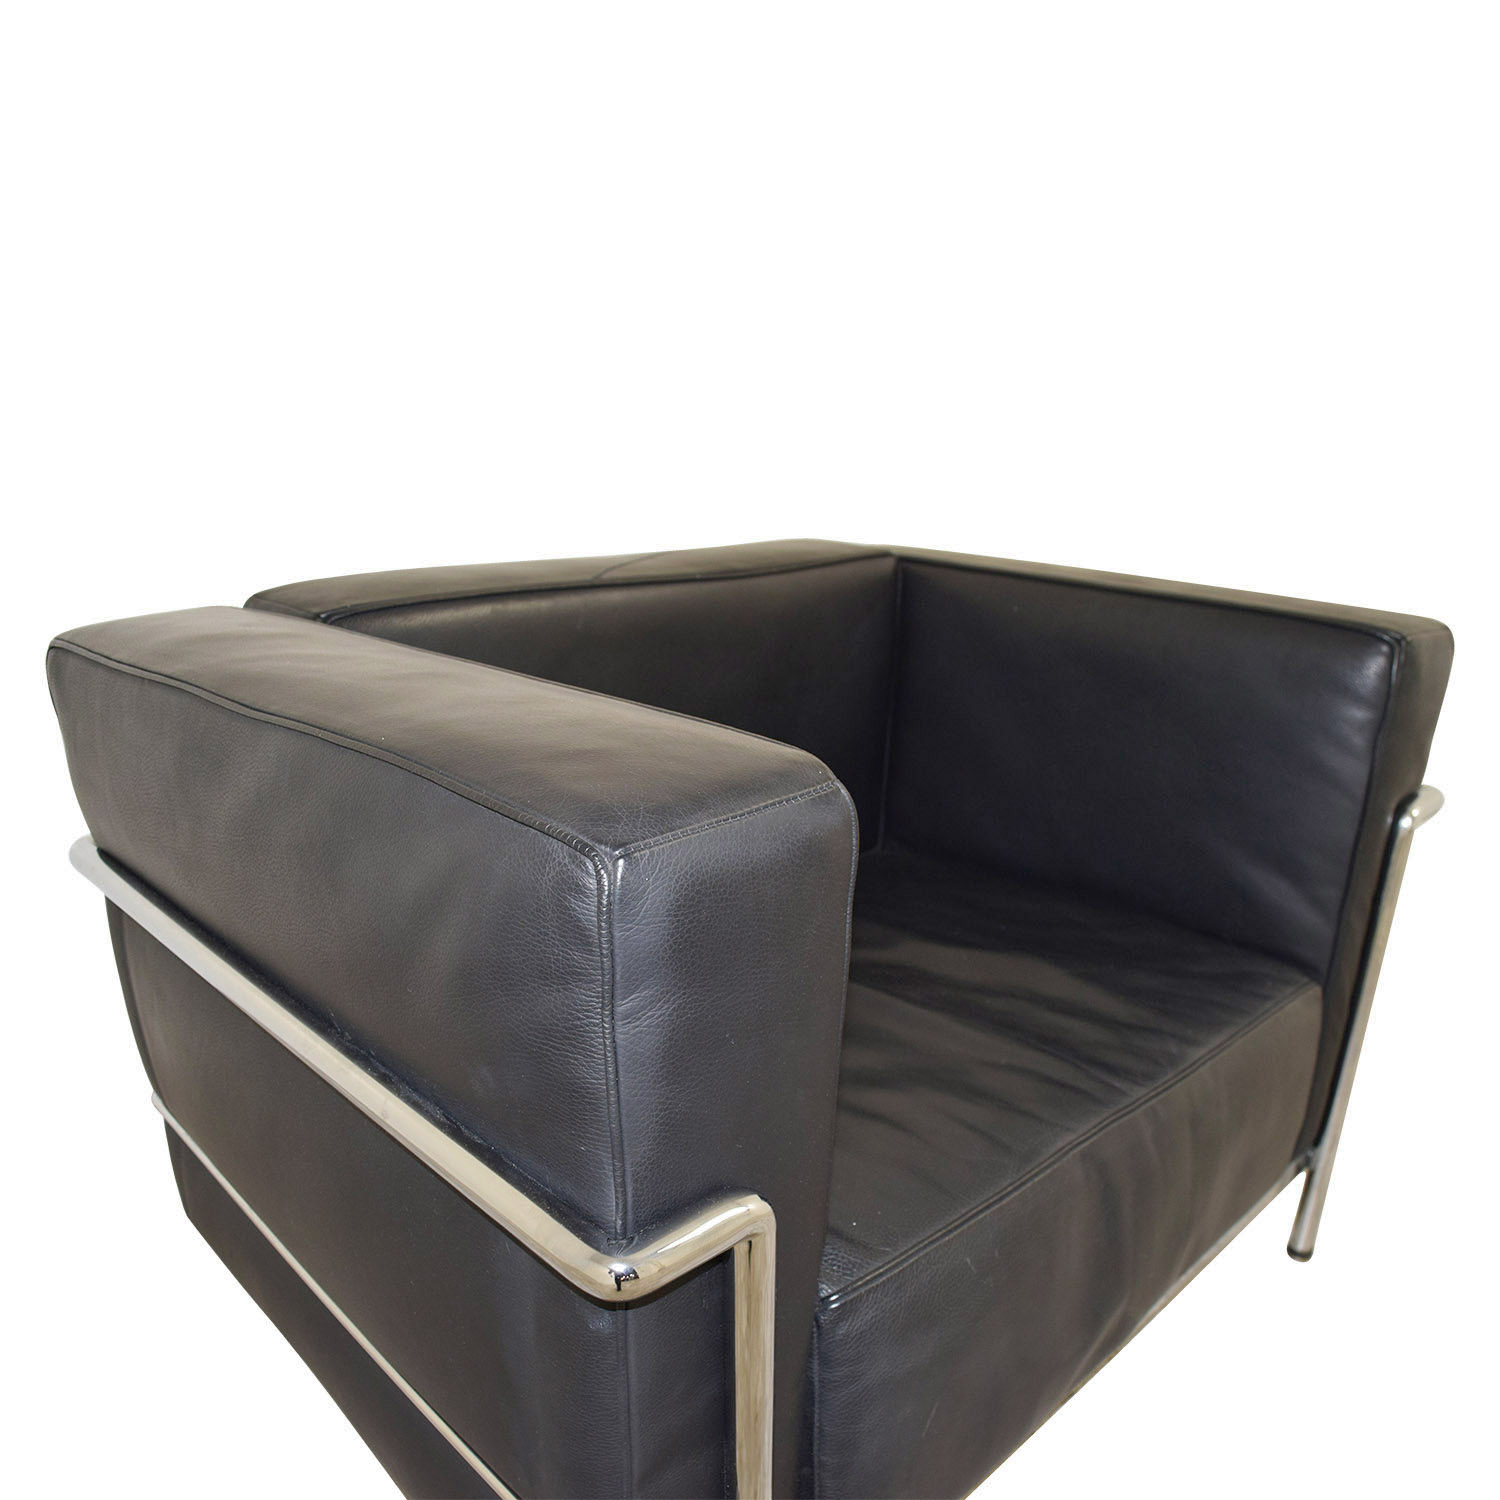 ... Buy Le Corbusier Replica Black Lounge Chair Chairs ...